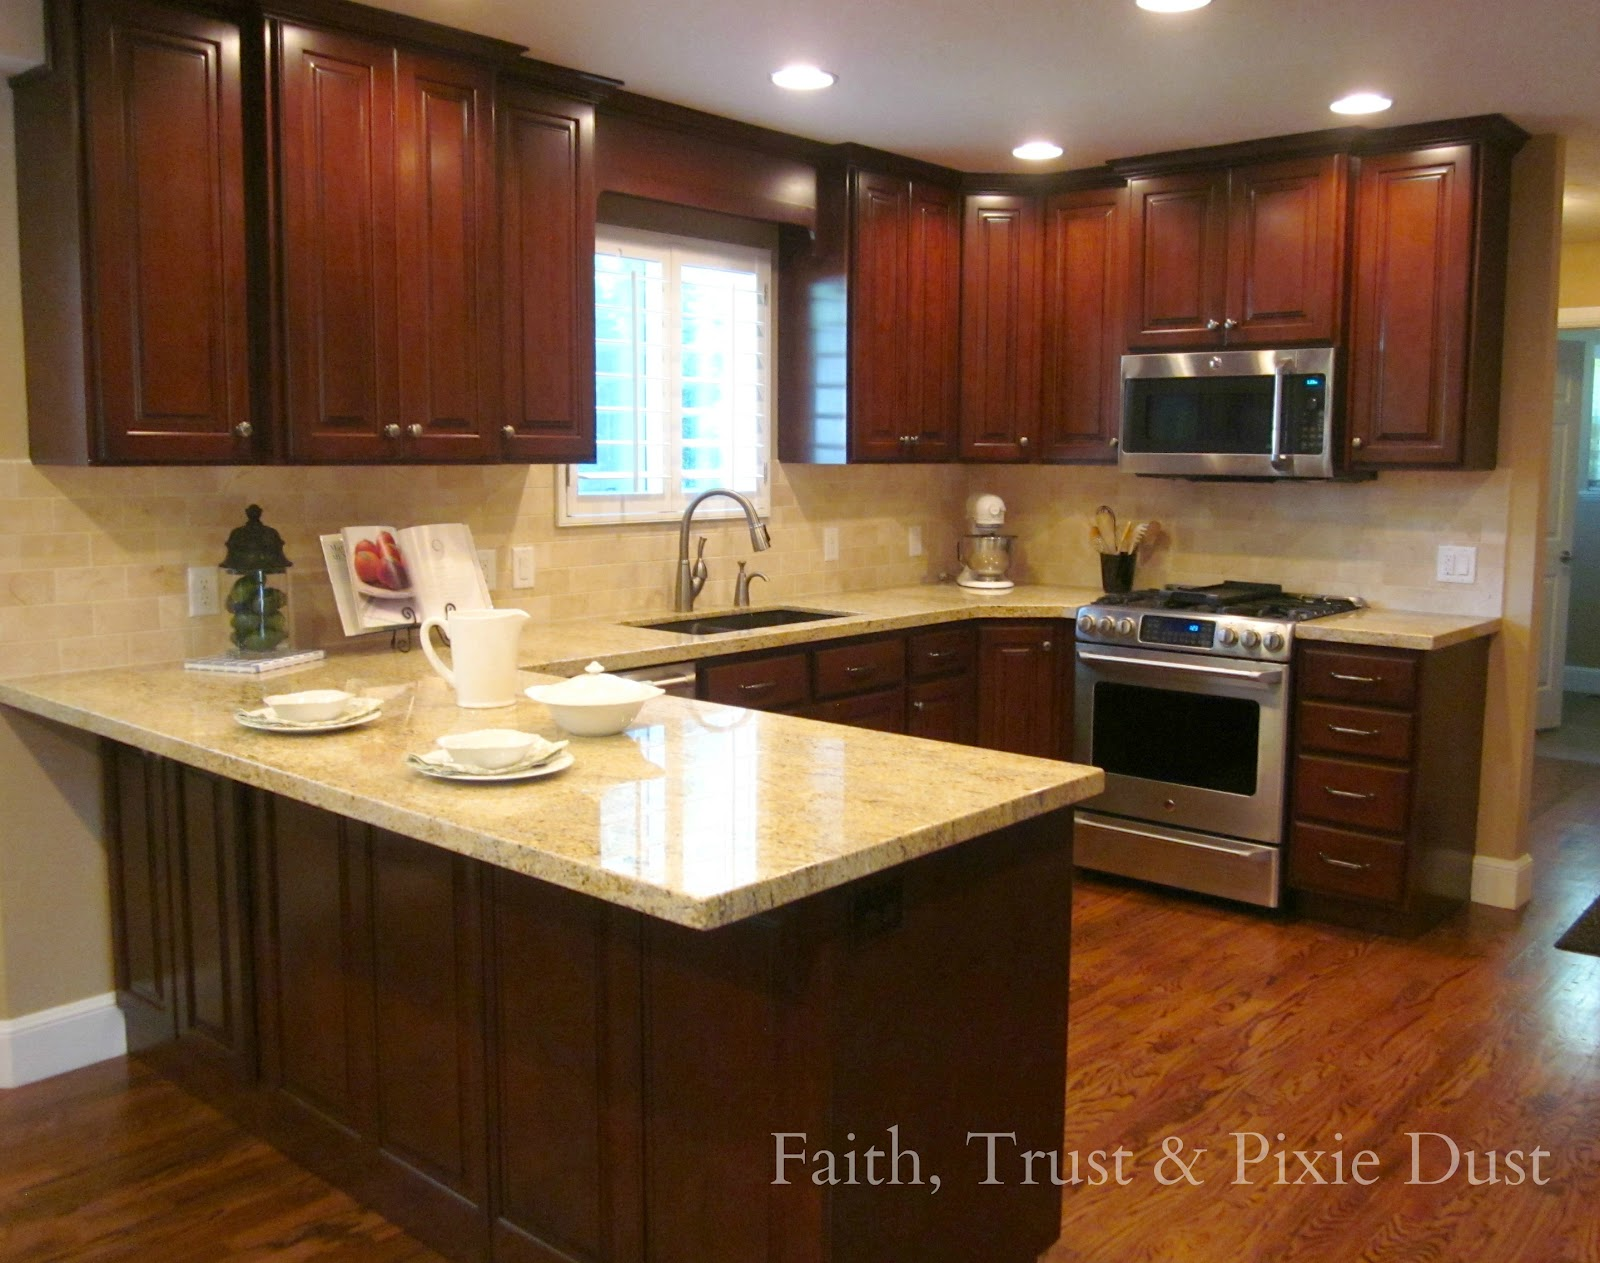 Honey i 39 m home a spectacular kitchen remodel for Remodeling your kitchen